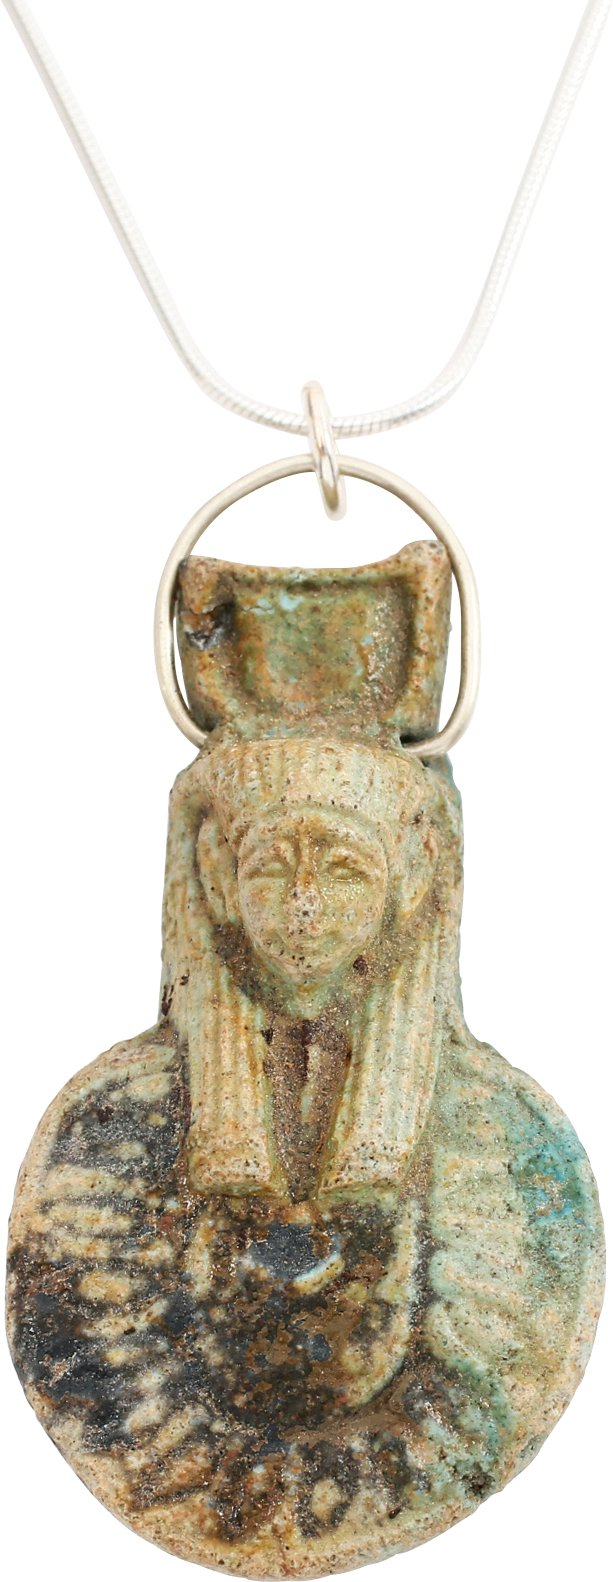 EGYPTIAN GRAND TOUR AMULET, 17th-18th CENTURY